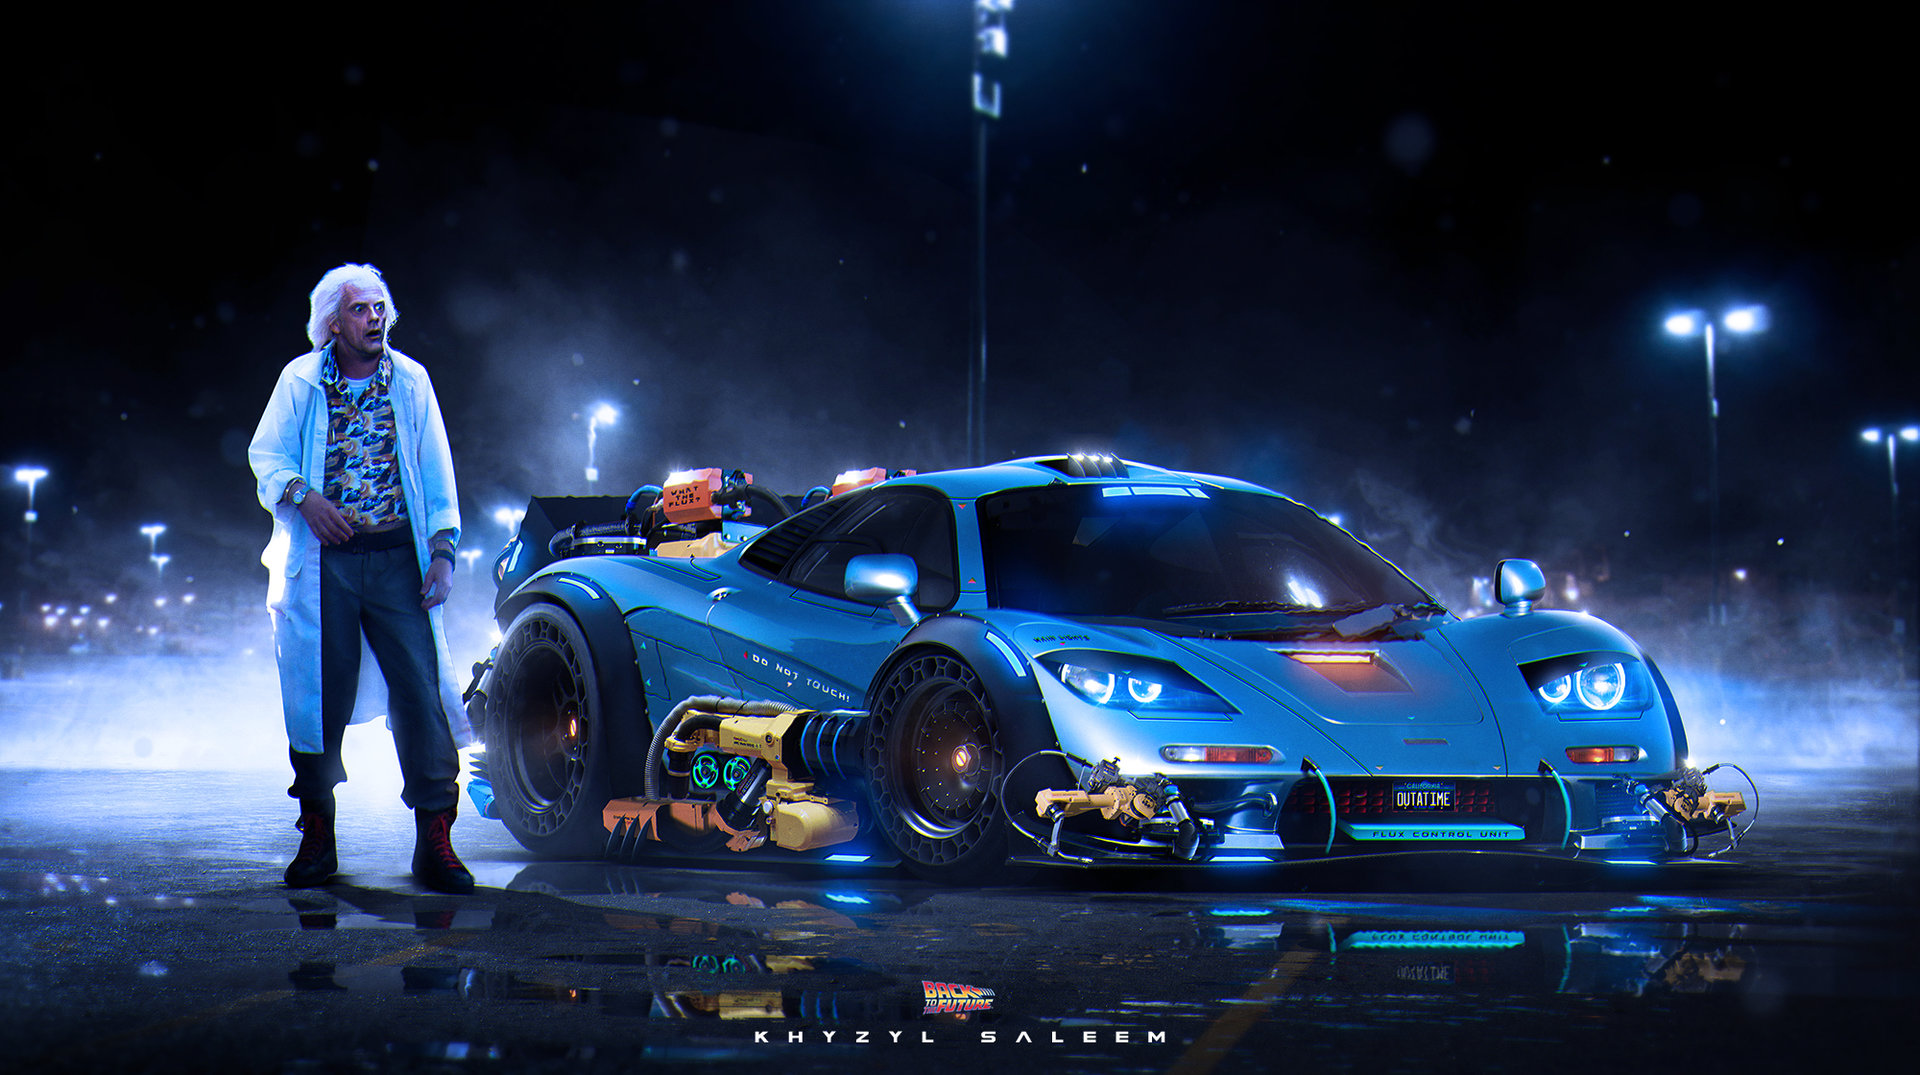 Best Bmw Car Wallpapers My New Wallpaper Credit To Khyzyl Saleem For This Awesome